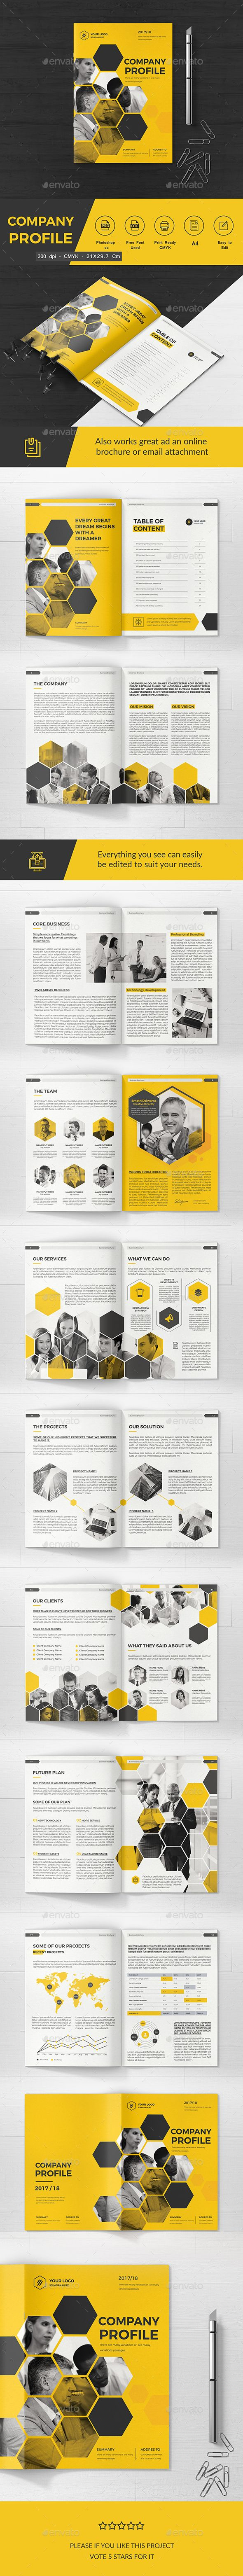 Company Profile — Photoshop PSD #company #professional • Download ➝ https://graphicriver.net/item/company-profile/20419479?ref=pxcr